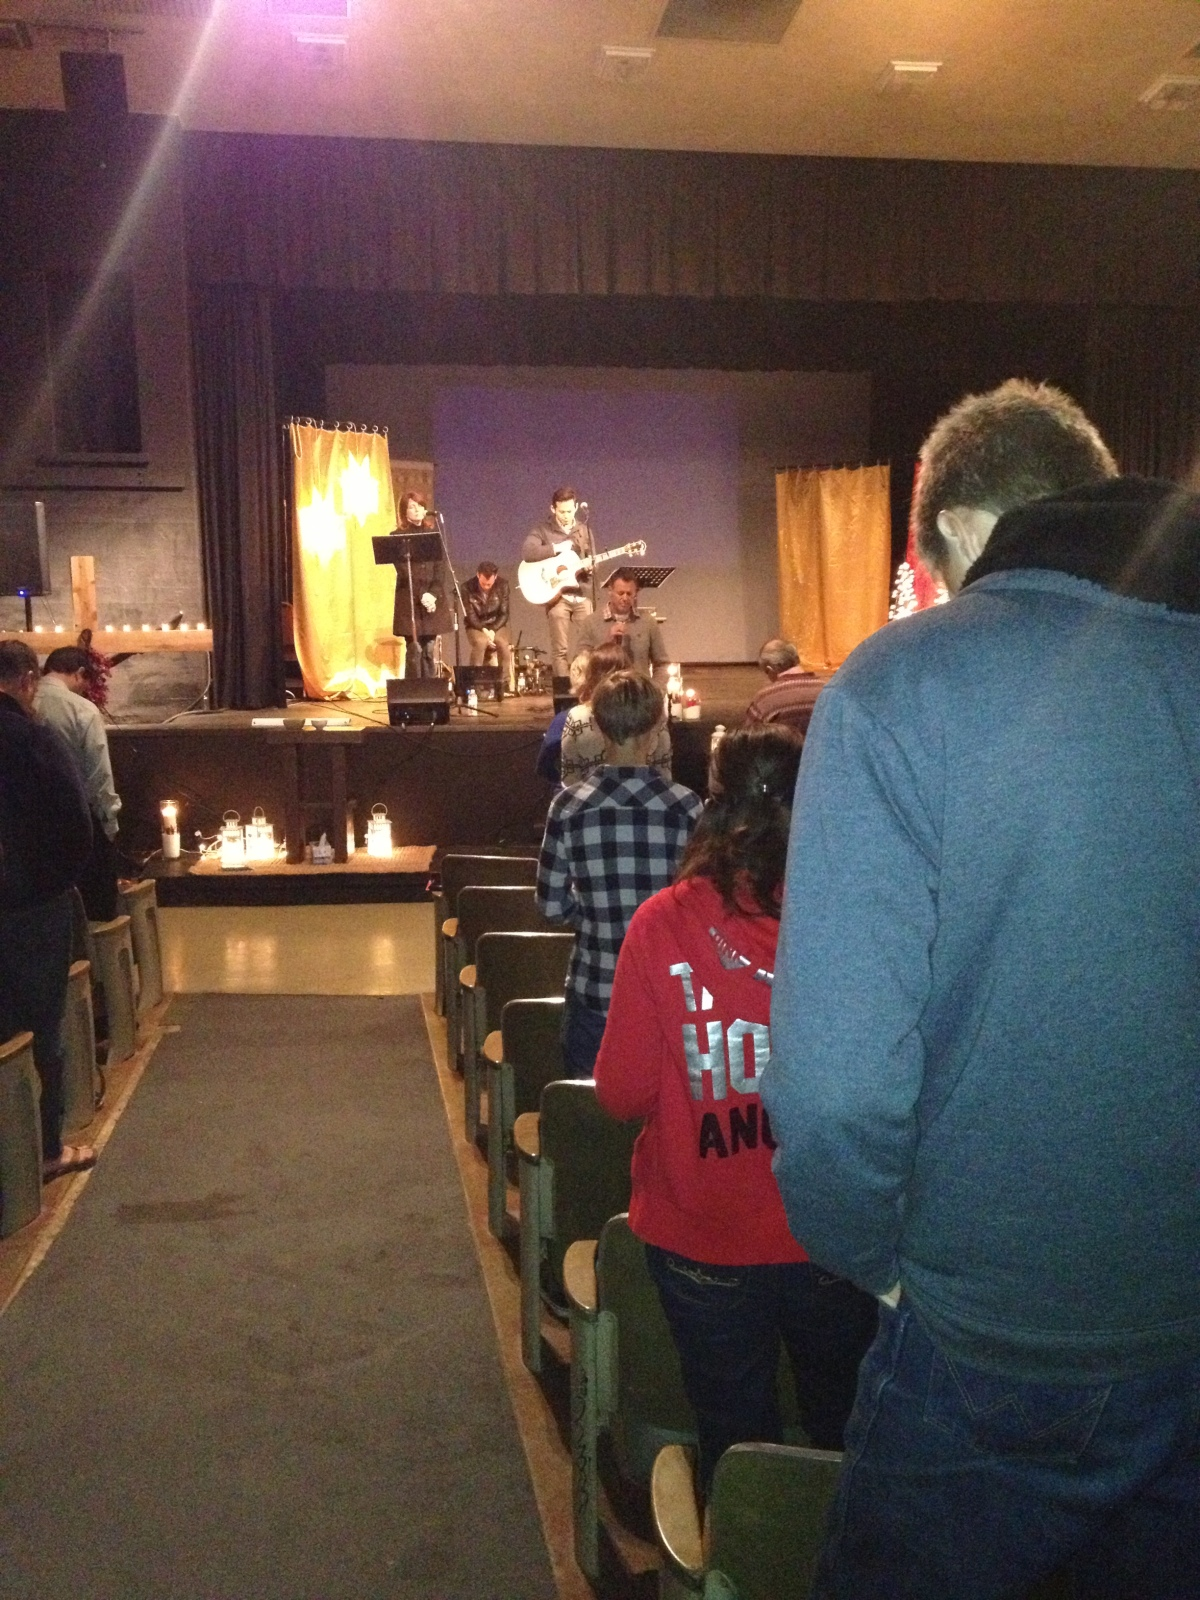 Our church praying for Newtown this morning.